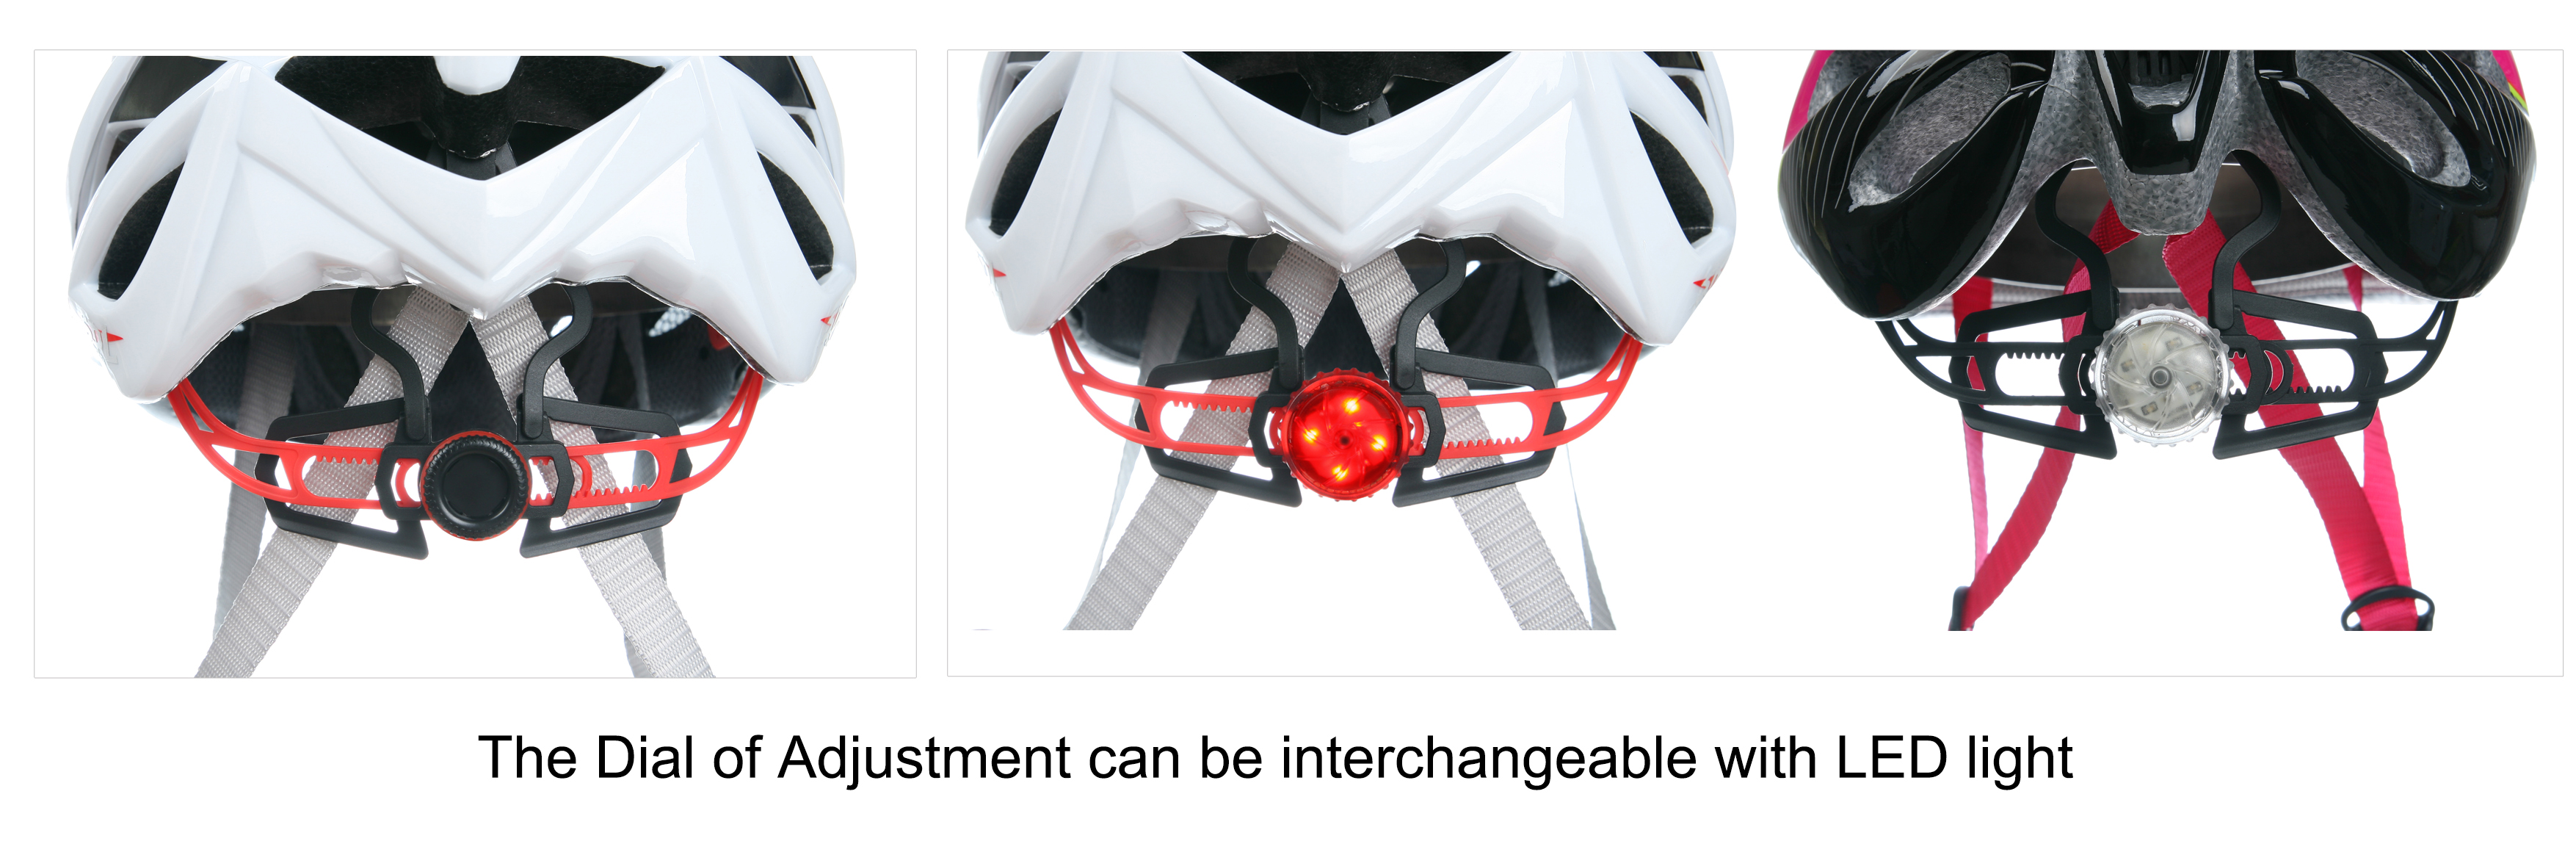 latest helmets for bikes